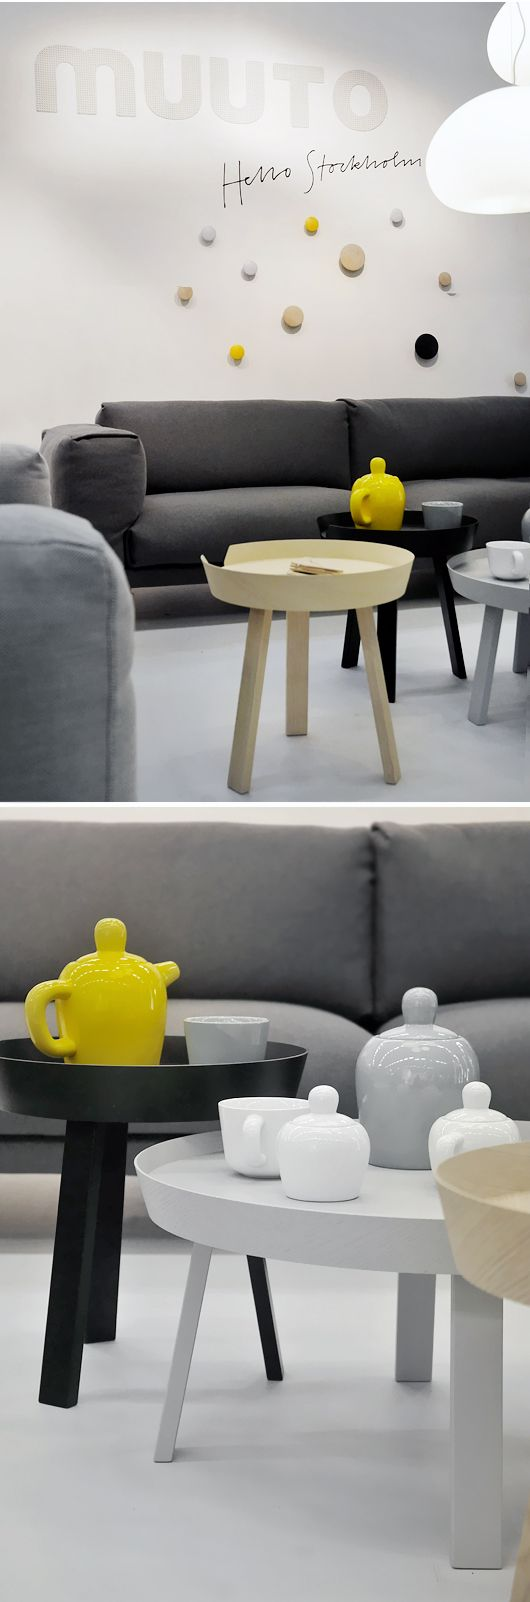 Muuto at Stockholm Fair - featuring the Around coffee table and the Bulky teapot